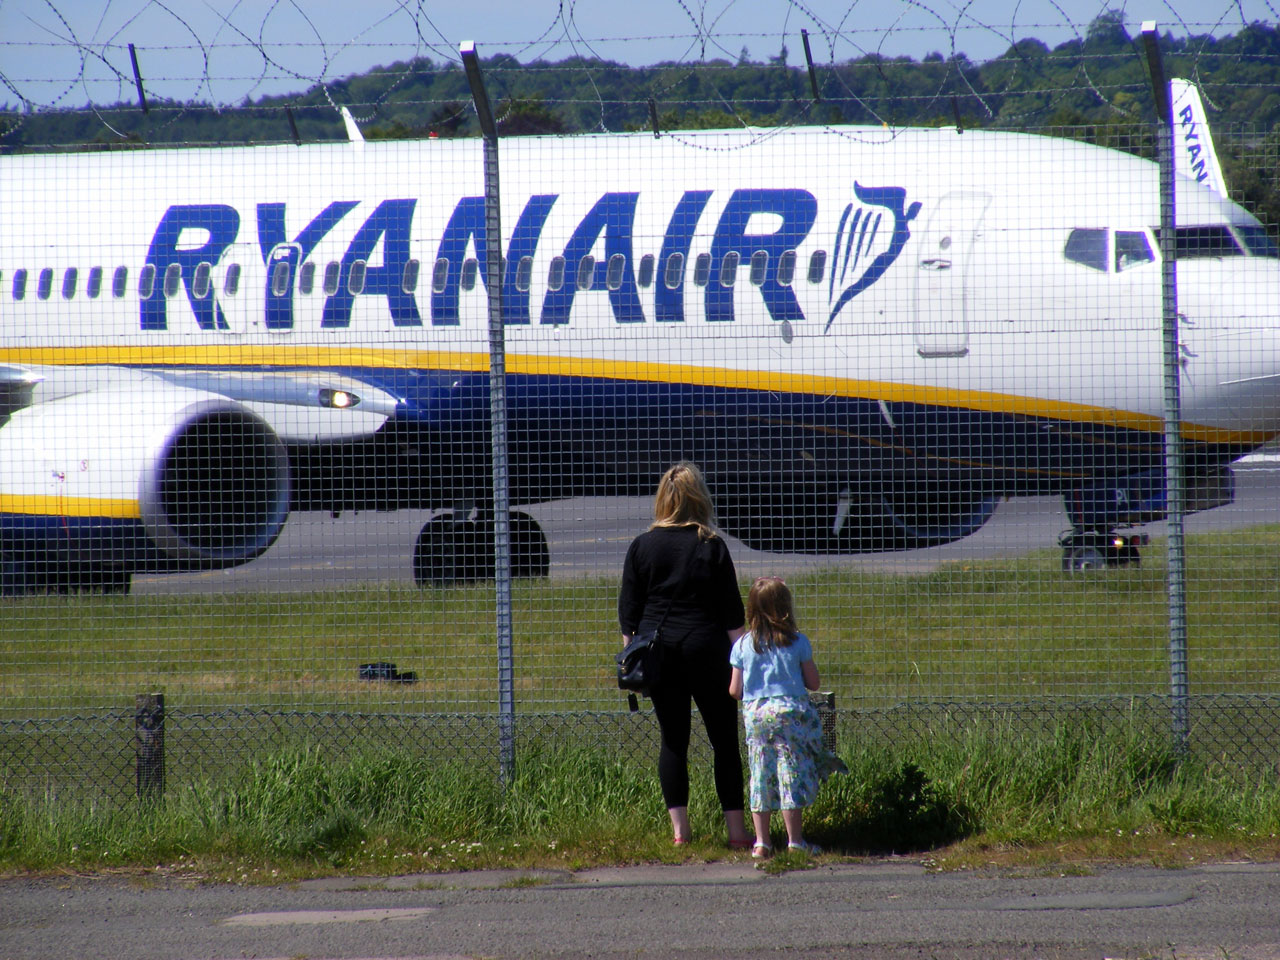 Ryanair potentially facing flight delay compensation claims from 200,000 passengers | FairPlane UK image